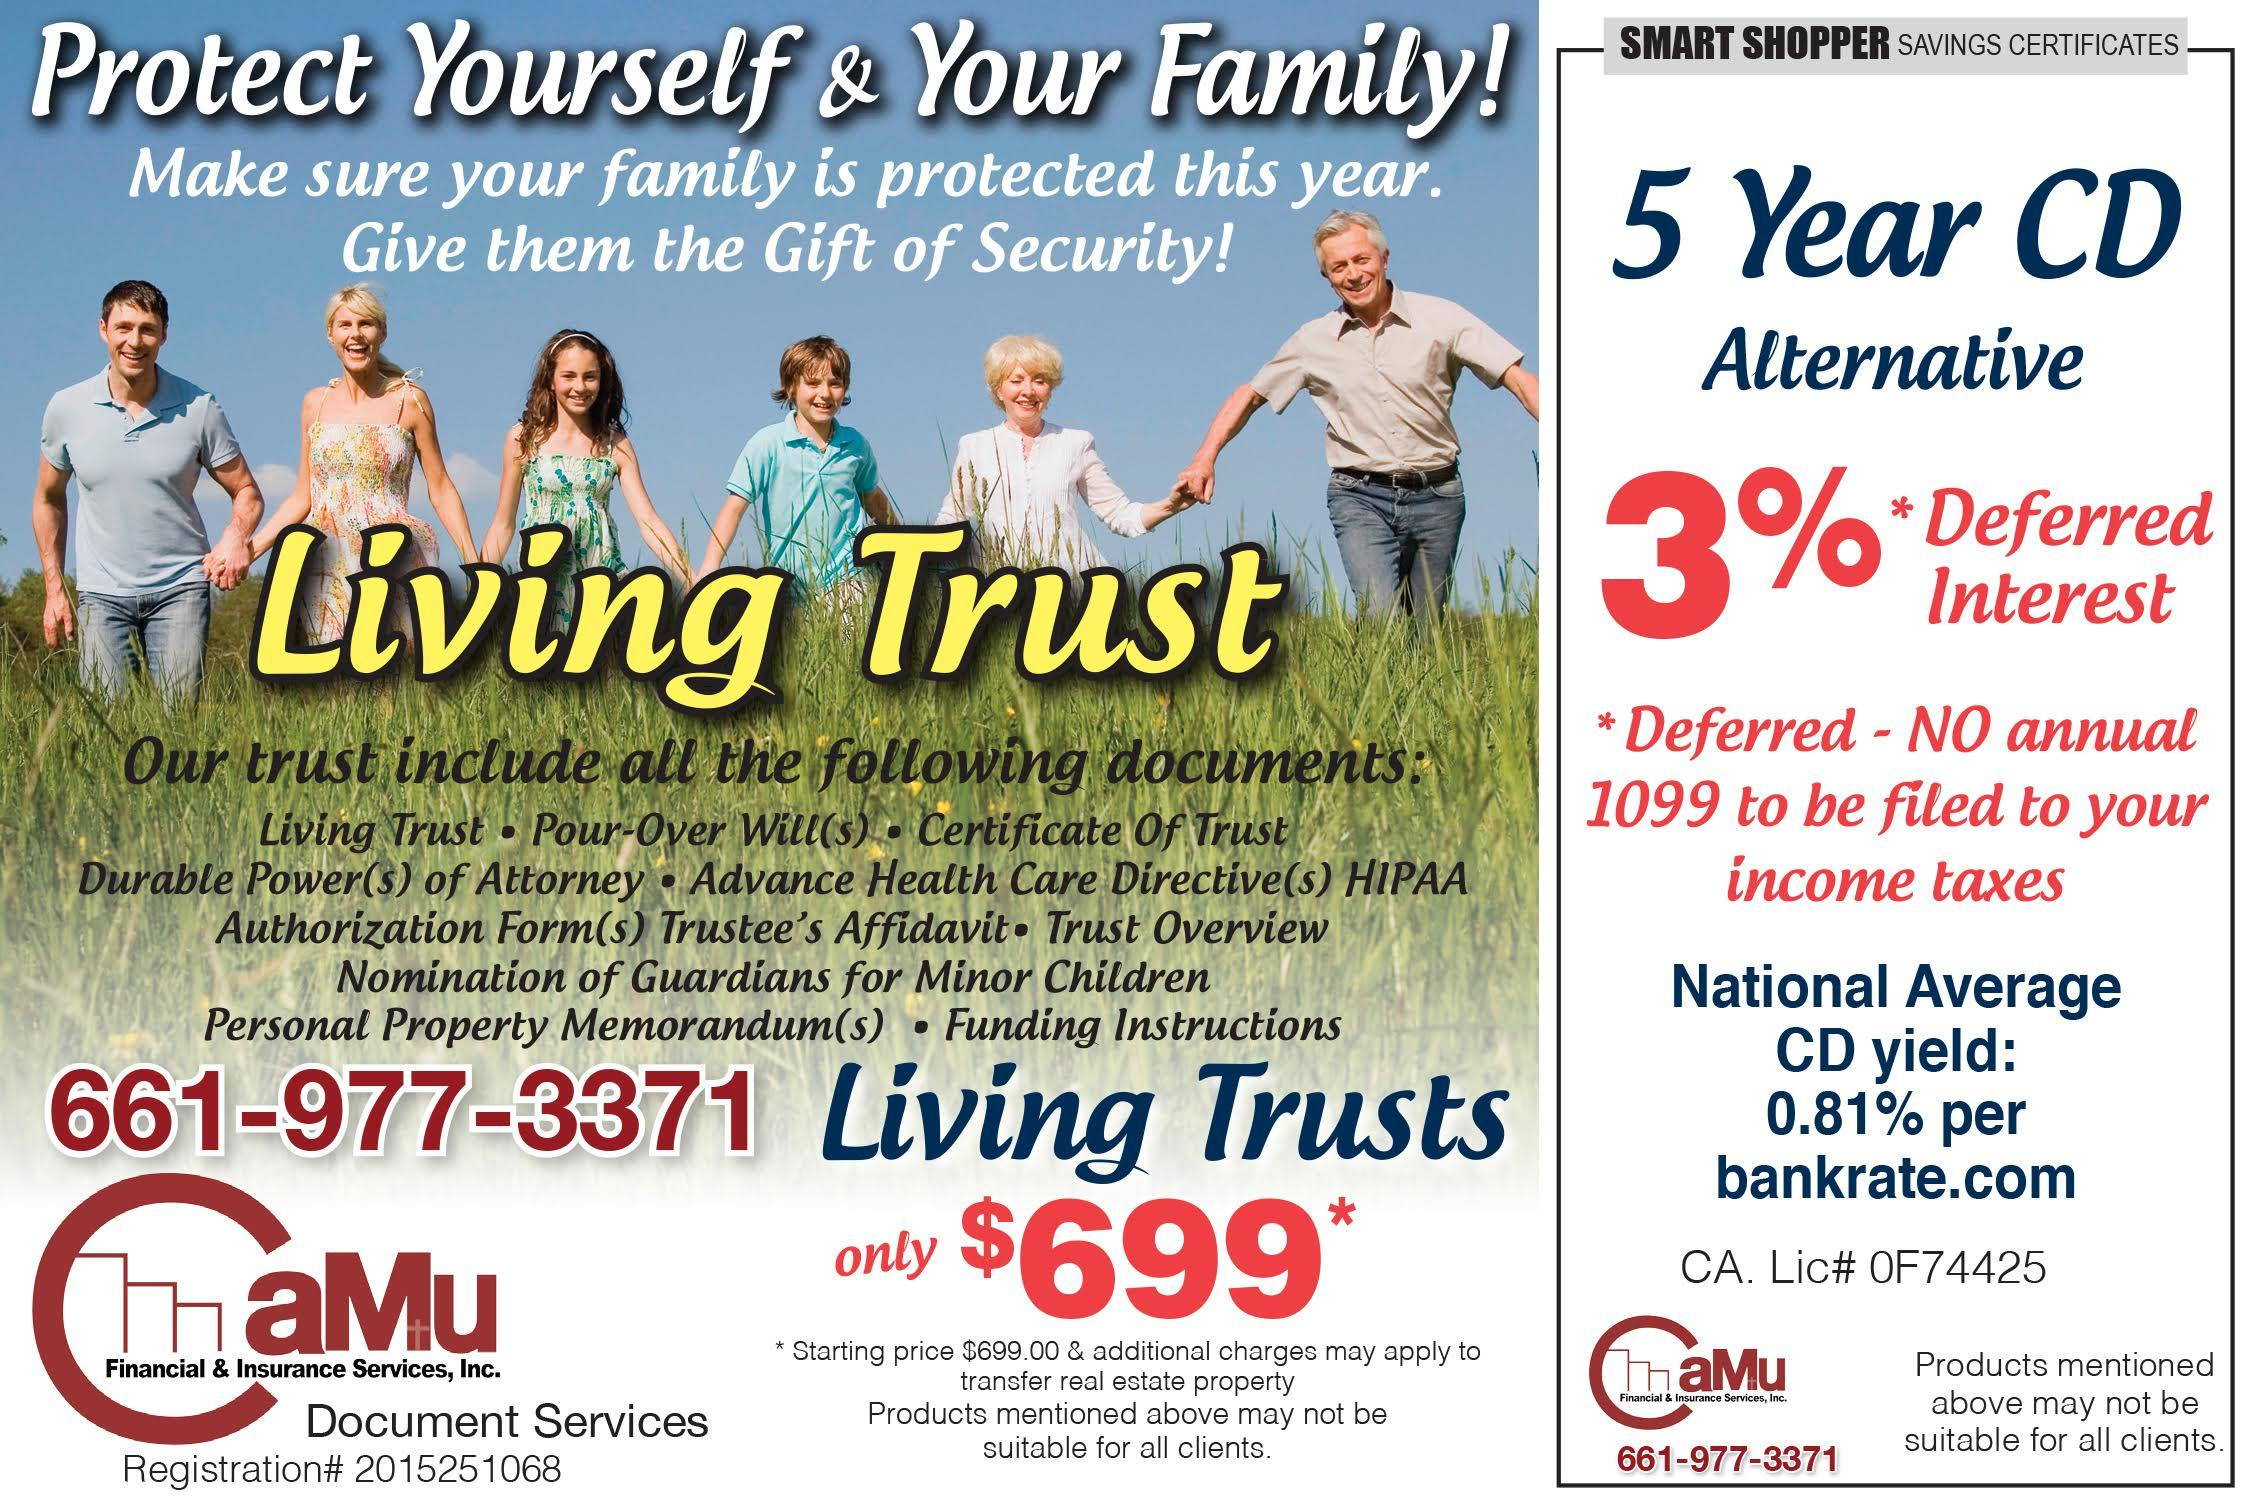 CaMu Financial and Insurance Services Inc. image 1